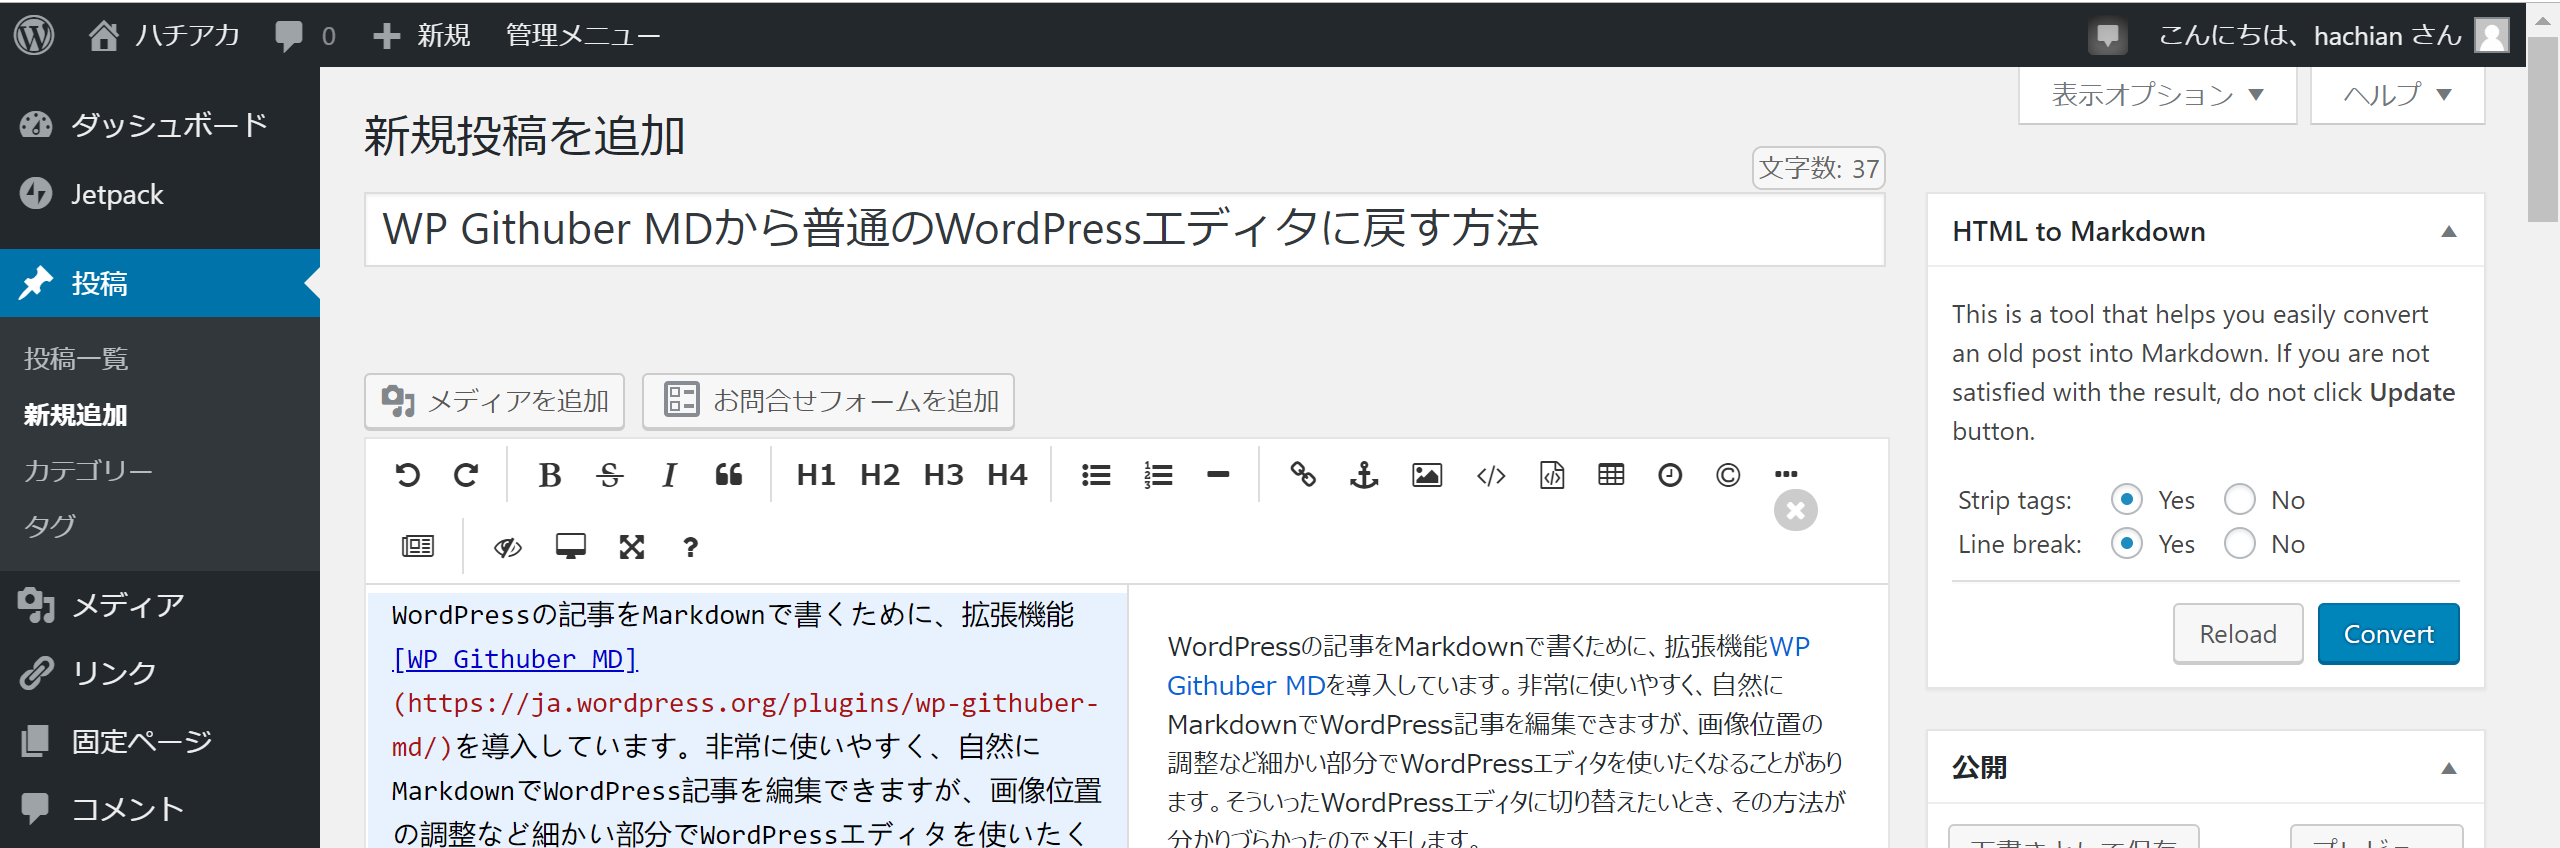 WP Githuber MD編集画面